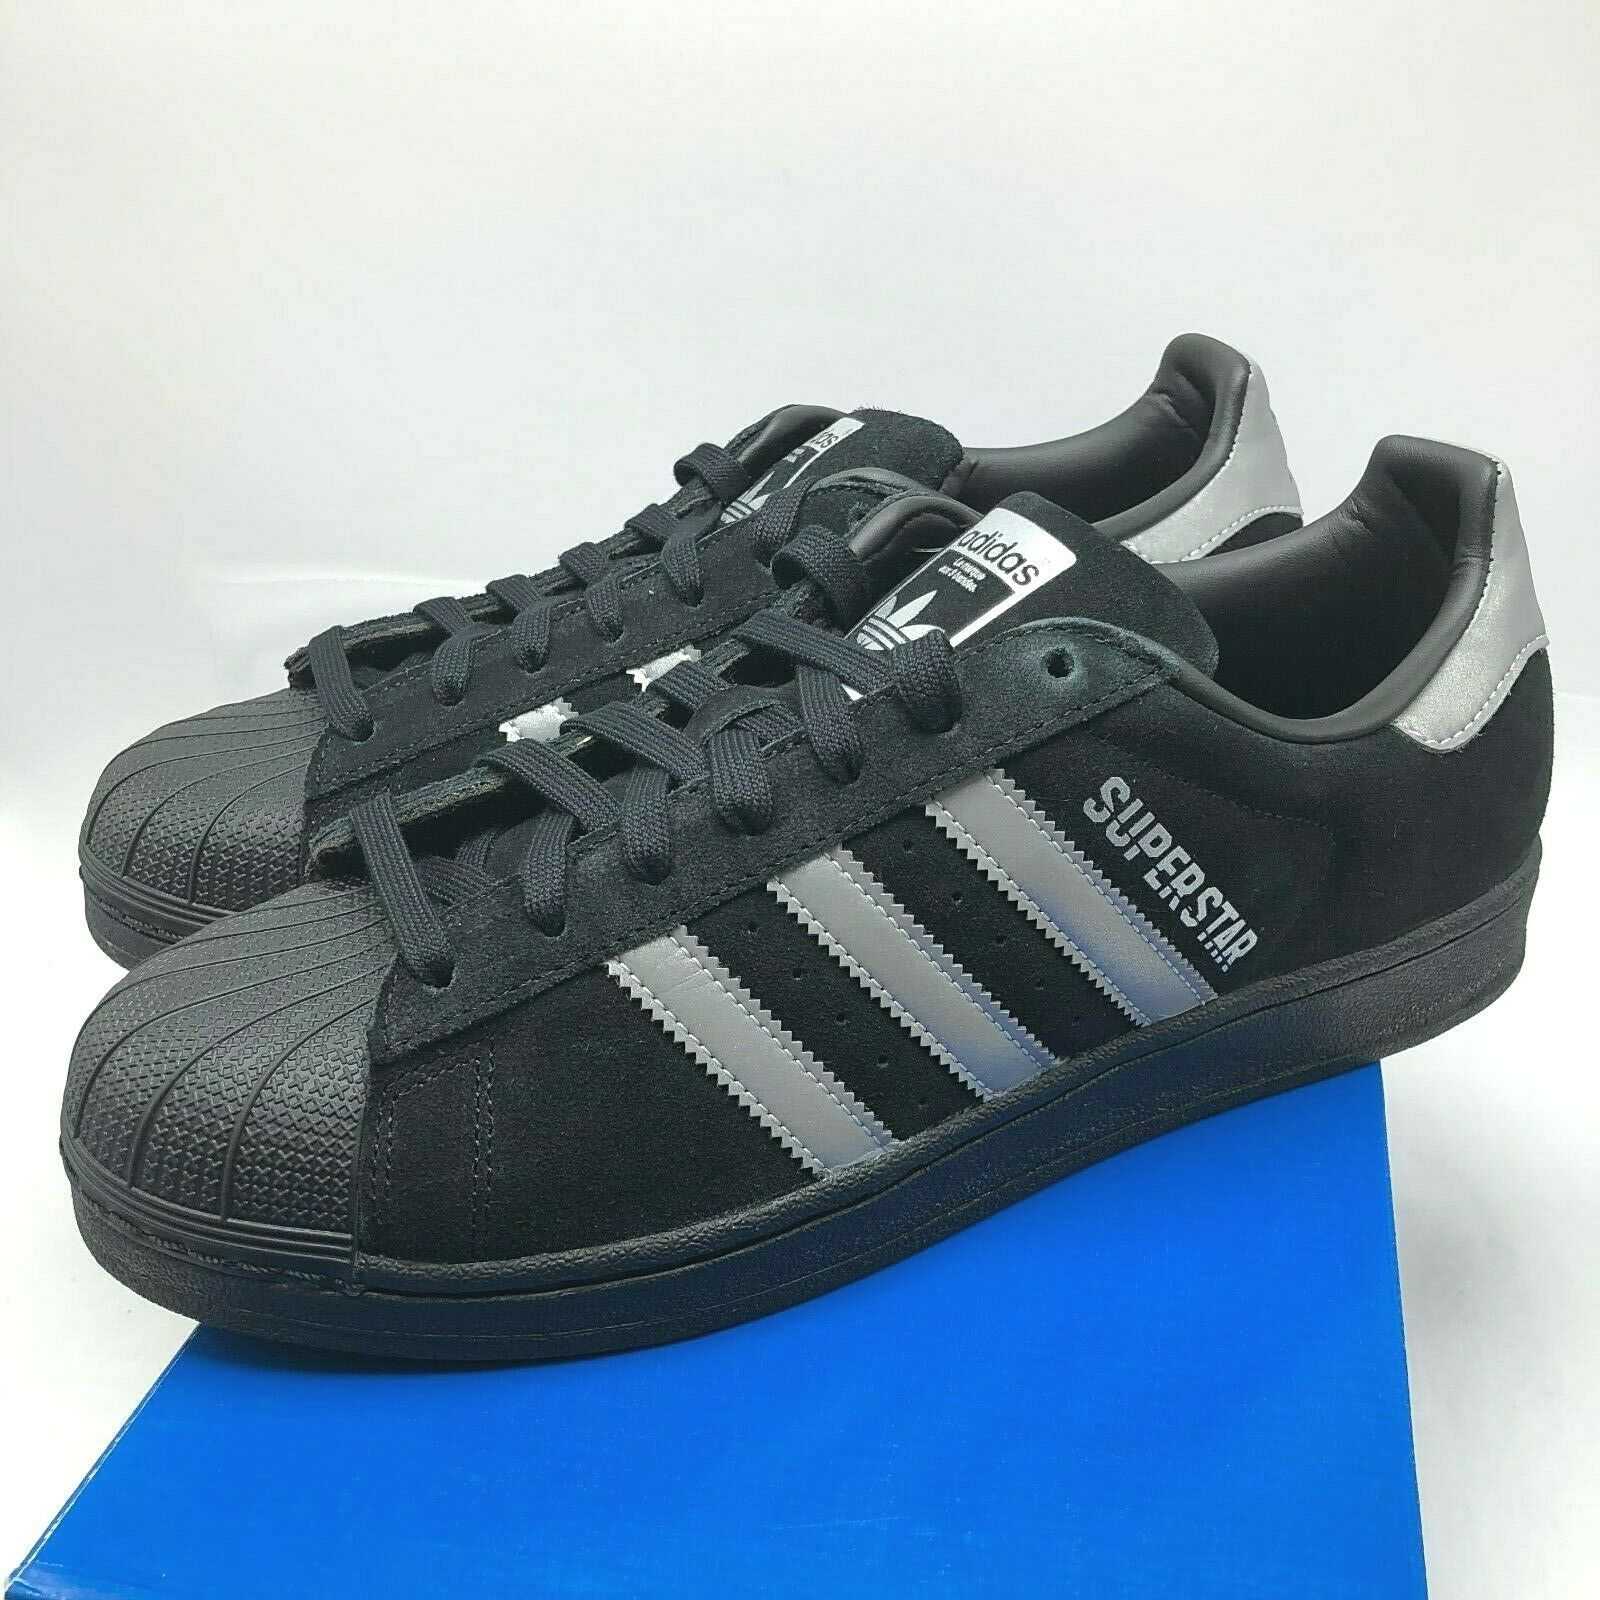 100% Authentic adidas tracksuit top,adidas superstar 2 shoes